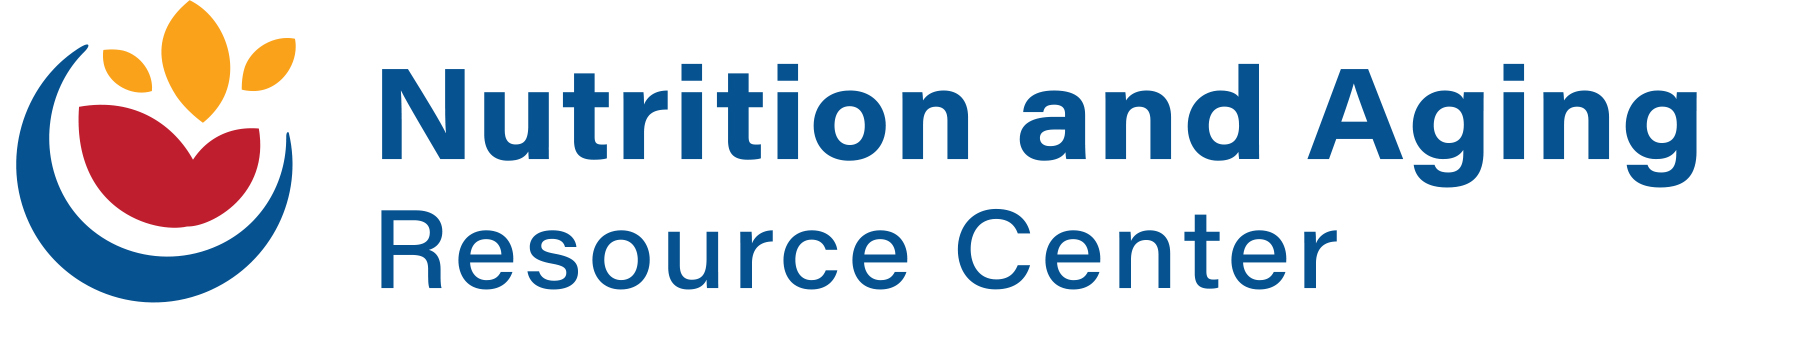 Nutrition and Aging Resource Center